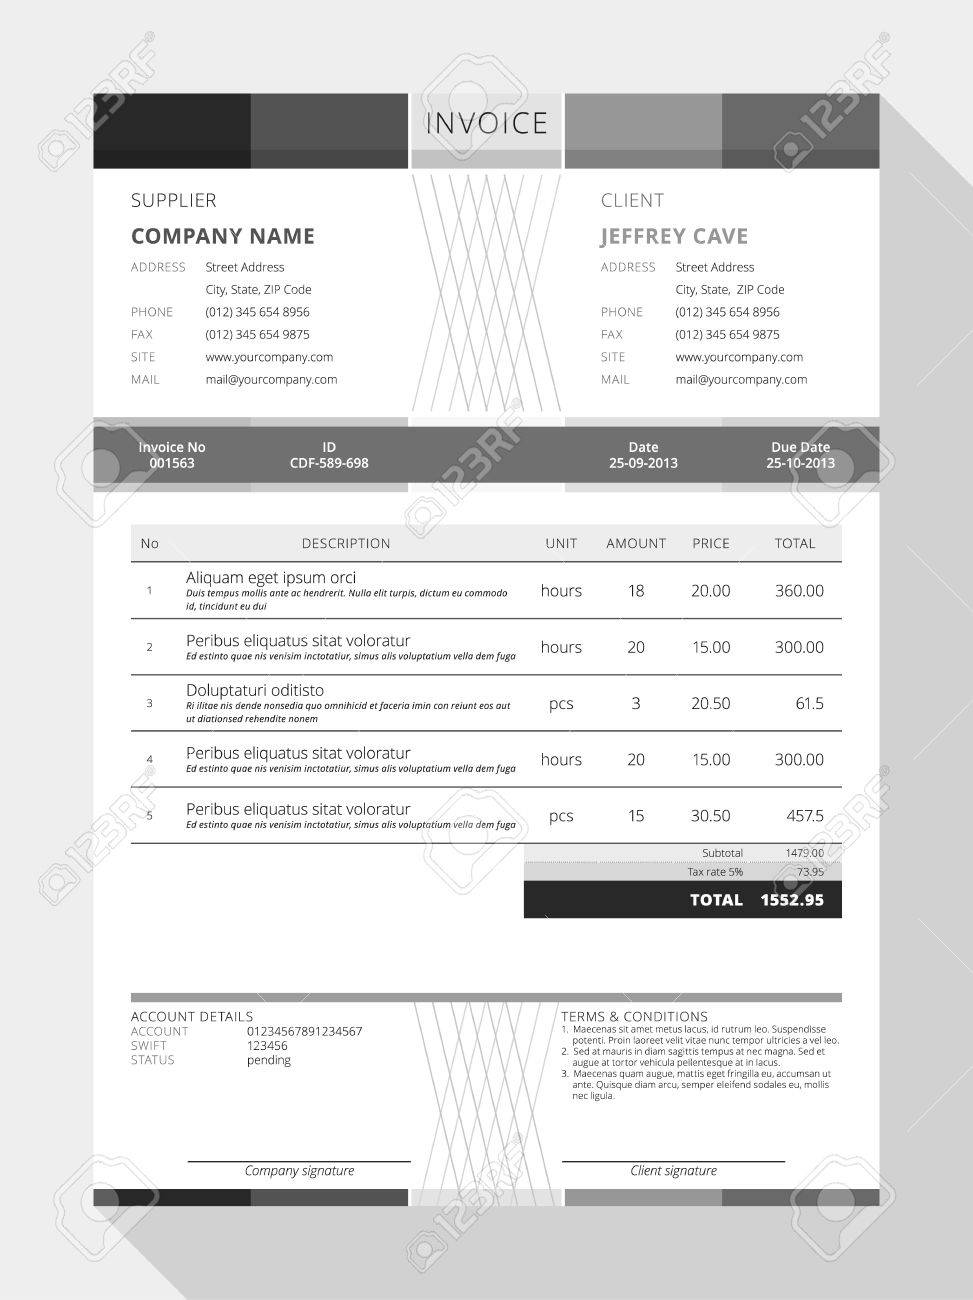 Howcanigettallerus  Pleasant Design An Invoice  Professional Graphic Design Invoice  With Heavenly Vector Customizable Invoice Form Template Design Vector   Design An Invoice With Delectable Can I Get A Receipt Also Rent Receipts Free In Addition Receipt Form Template Word And Room Rent Receipt Format Pdf As Well As Blank Payment Receipt Additionally American Depository Receipts Adr From Happytomco With Howcanigettallerus  Heavenly Design An Invoice  Professional Graphic Design Invoice  With Delectable Vector Customizable Invoice Form Template Design Vector   Design An Invoice And Pleasant Can I Get A Receipt Also Rent Receipts Free In Addition Receipt Form Template Word From Happytomco